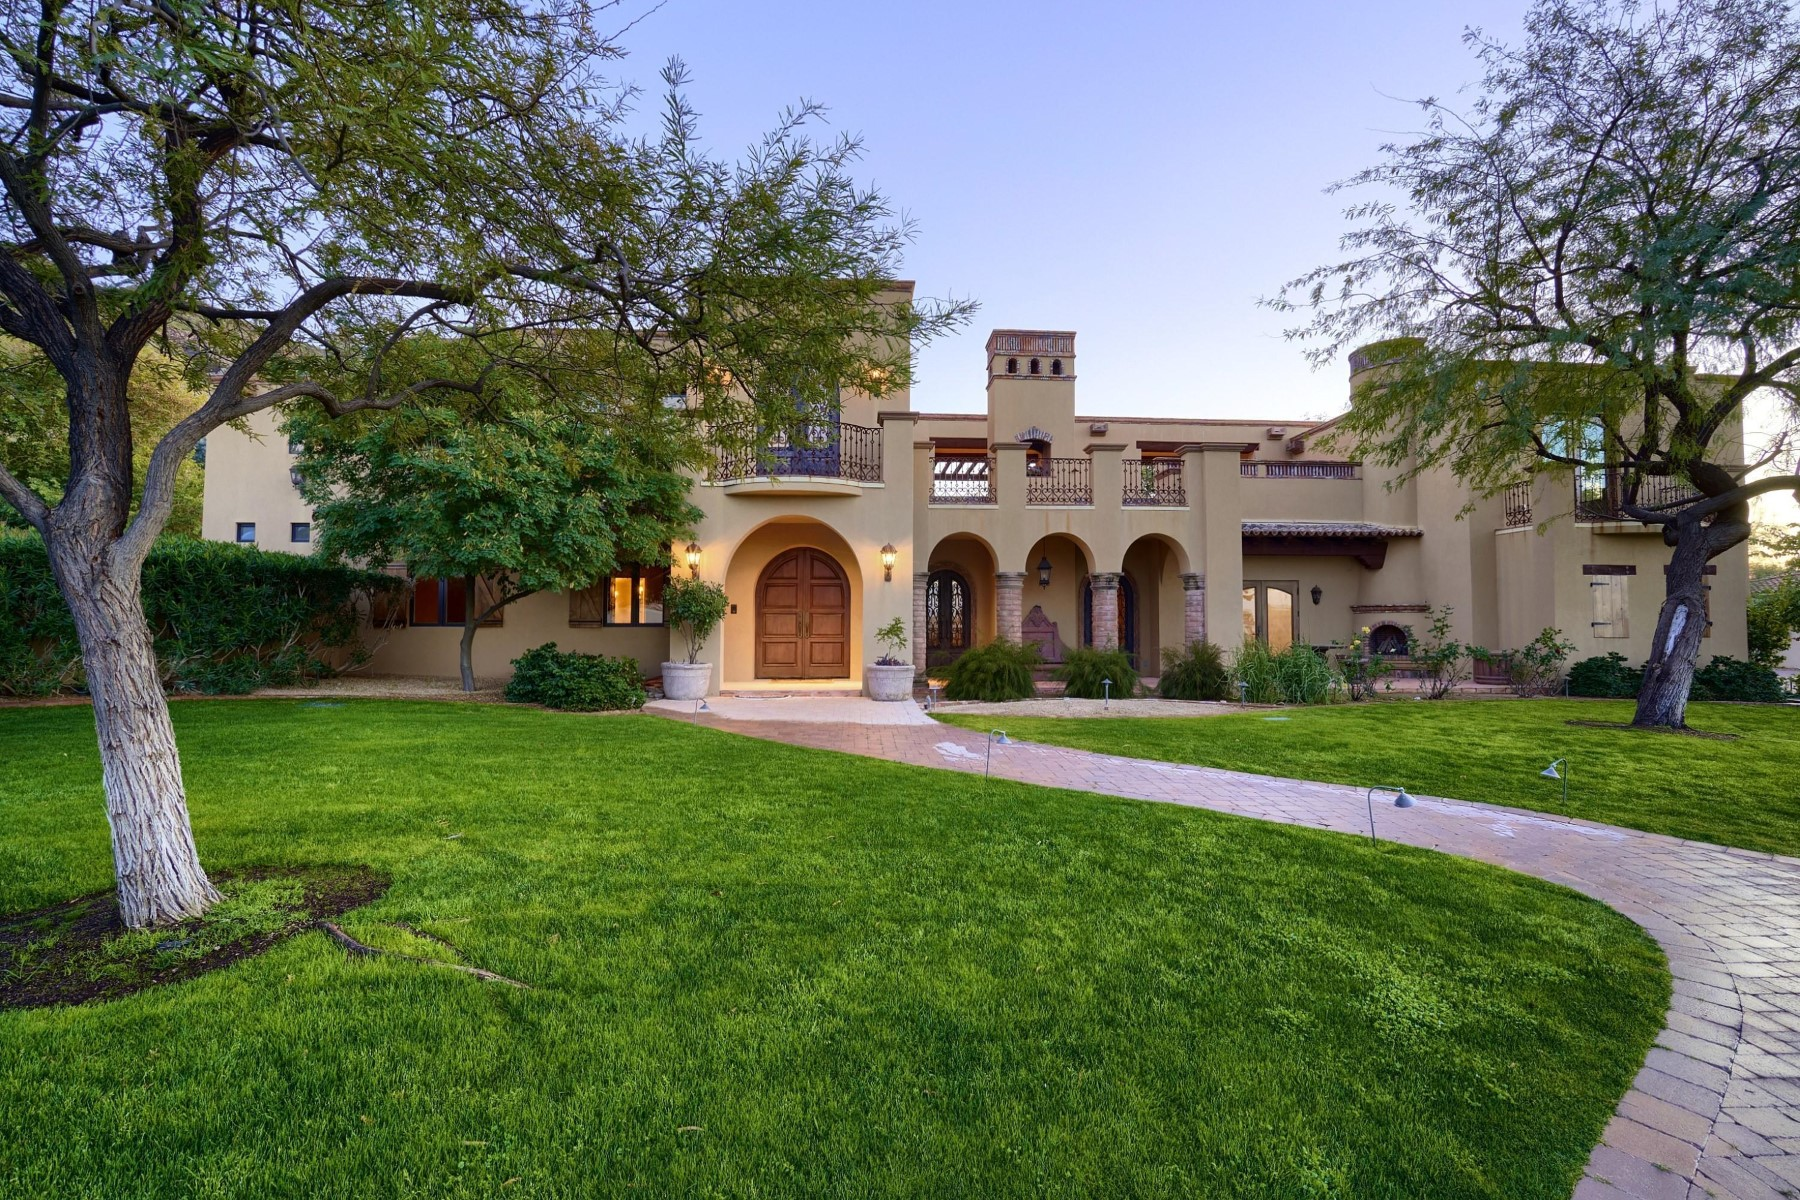 Single Family Homes for Active at 5239 Roadrunner, Paradise Valley, AZ 85253 5239 Roadrunner Paradise Valley, Arizona 85253 United States